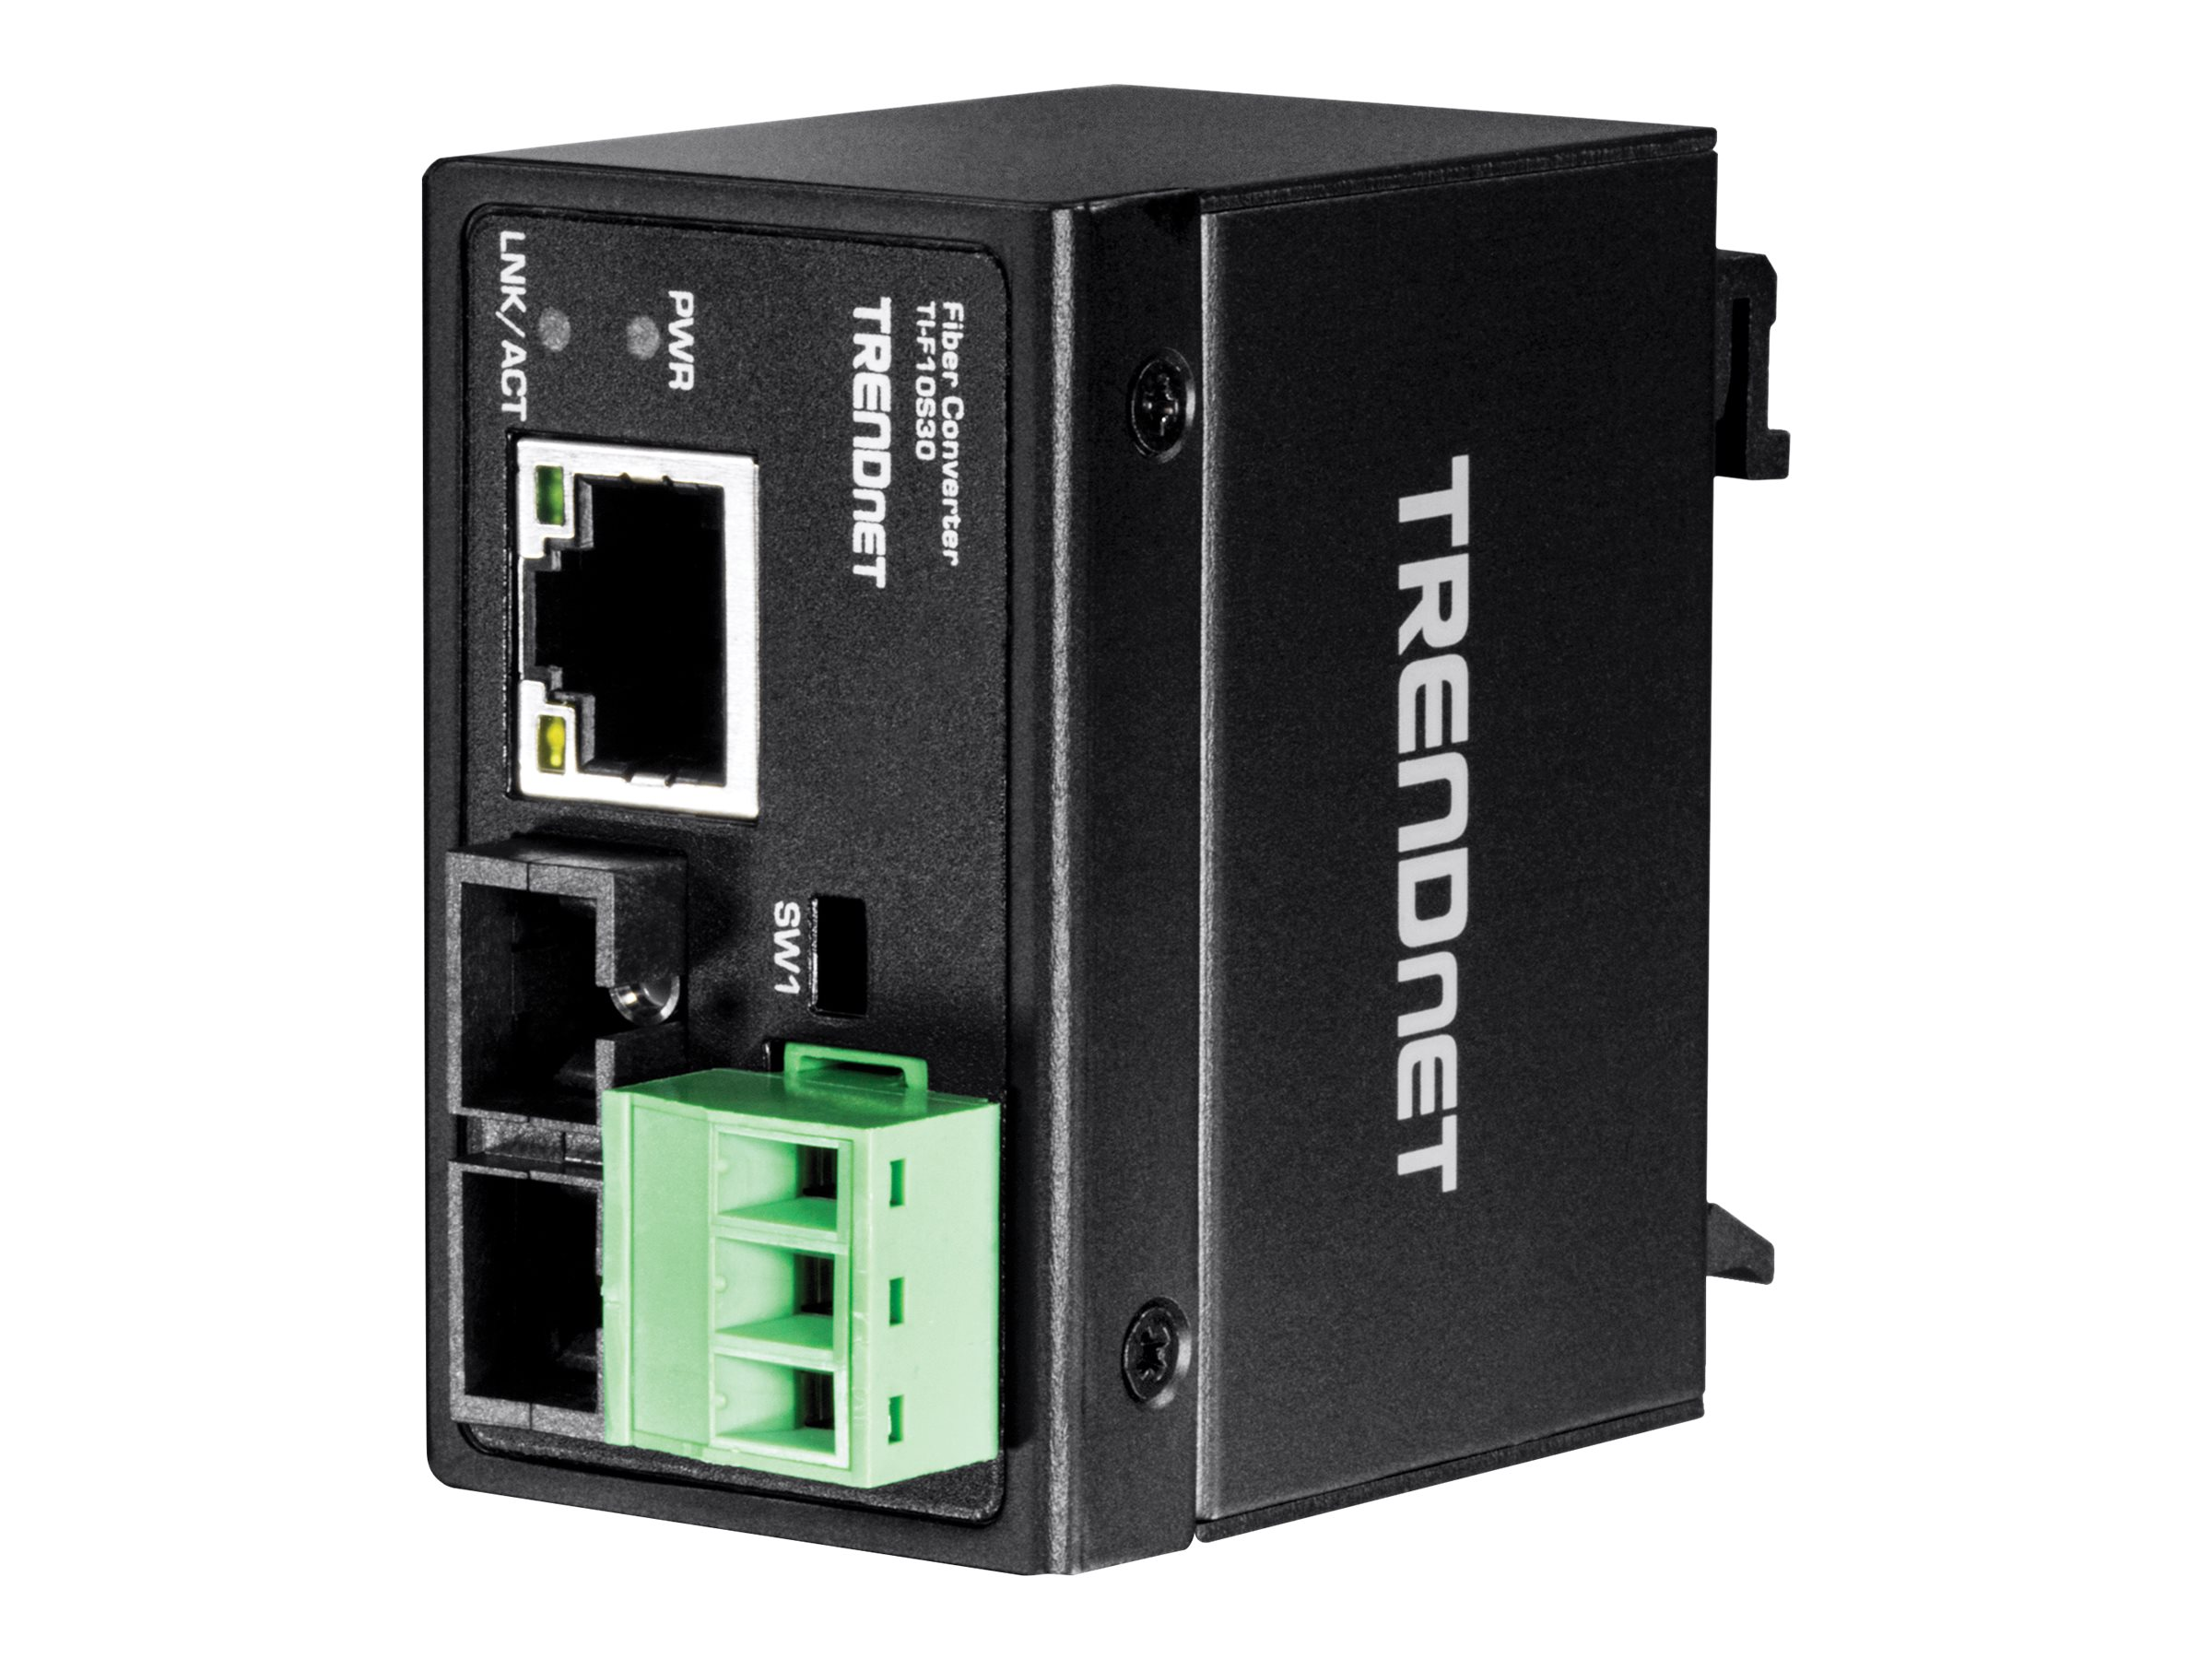 TRENDnet Hardened Industrial 100Base-FX Single-Mode SC Fiber Converter (30 km, 18.6 mi)